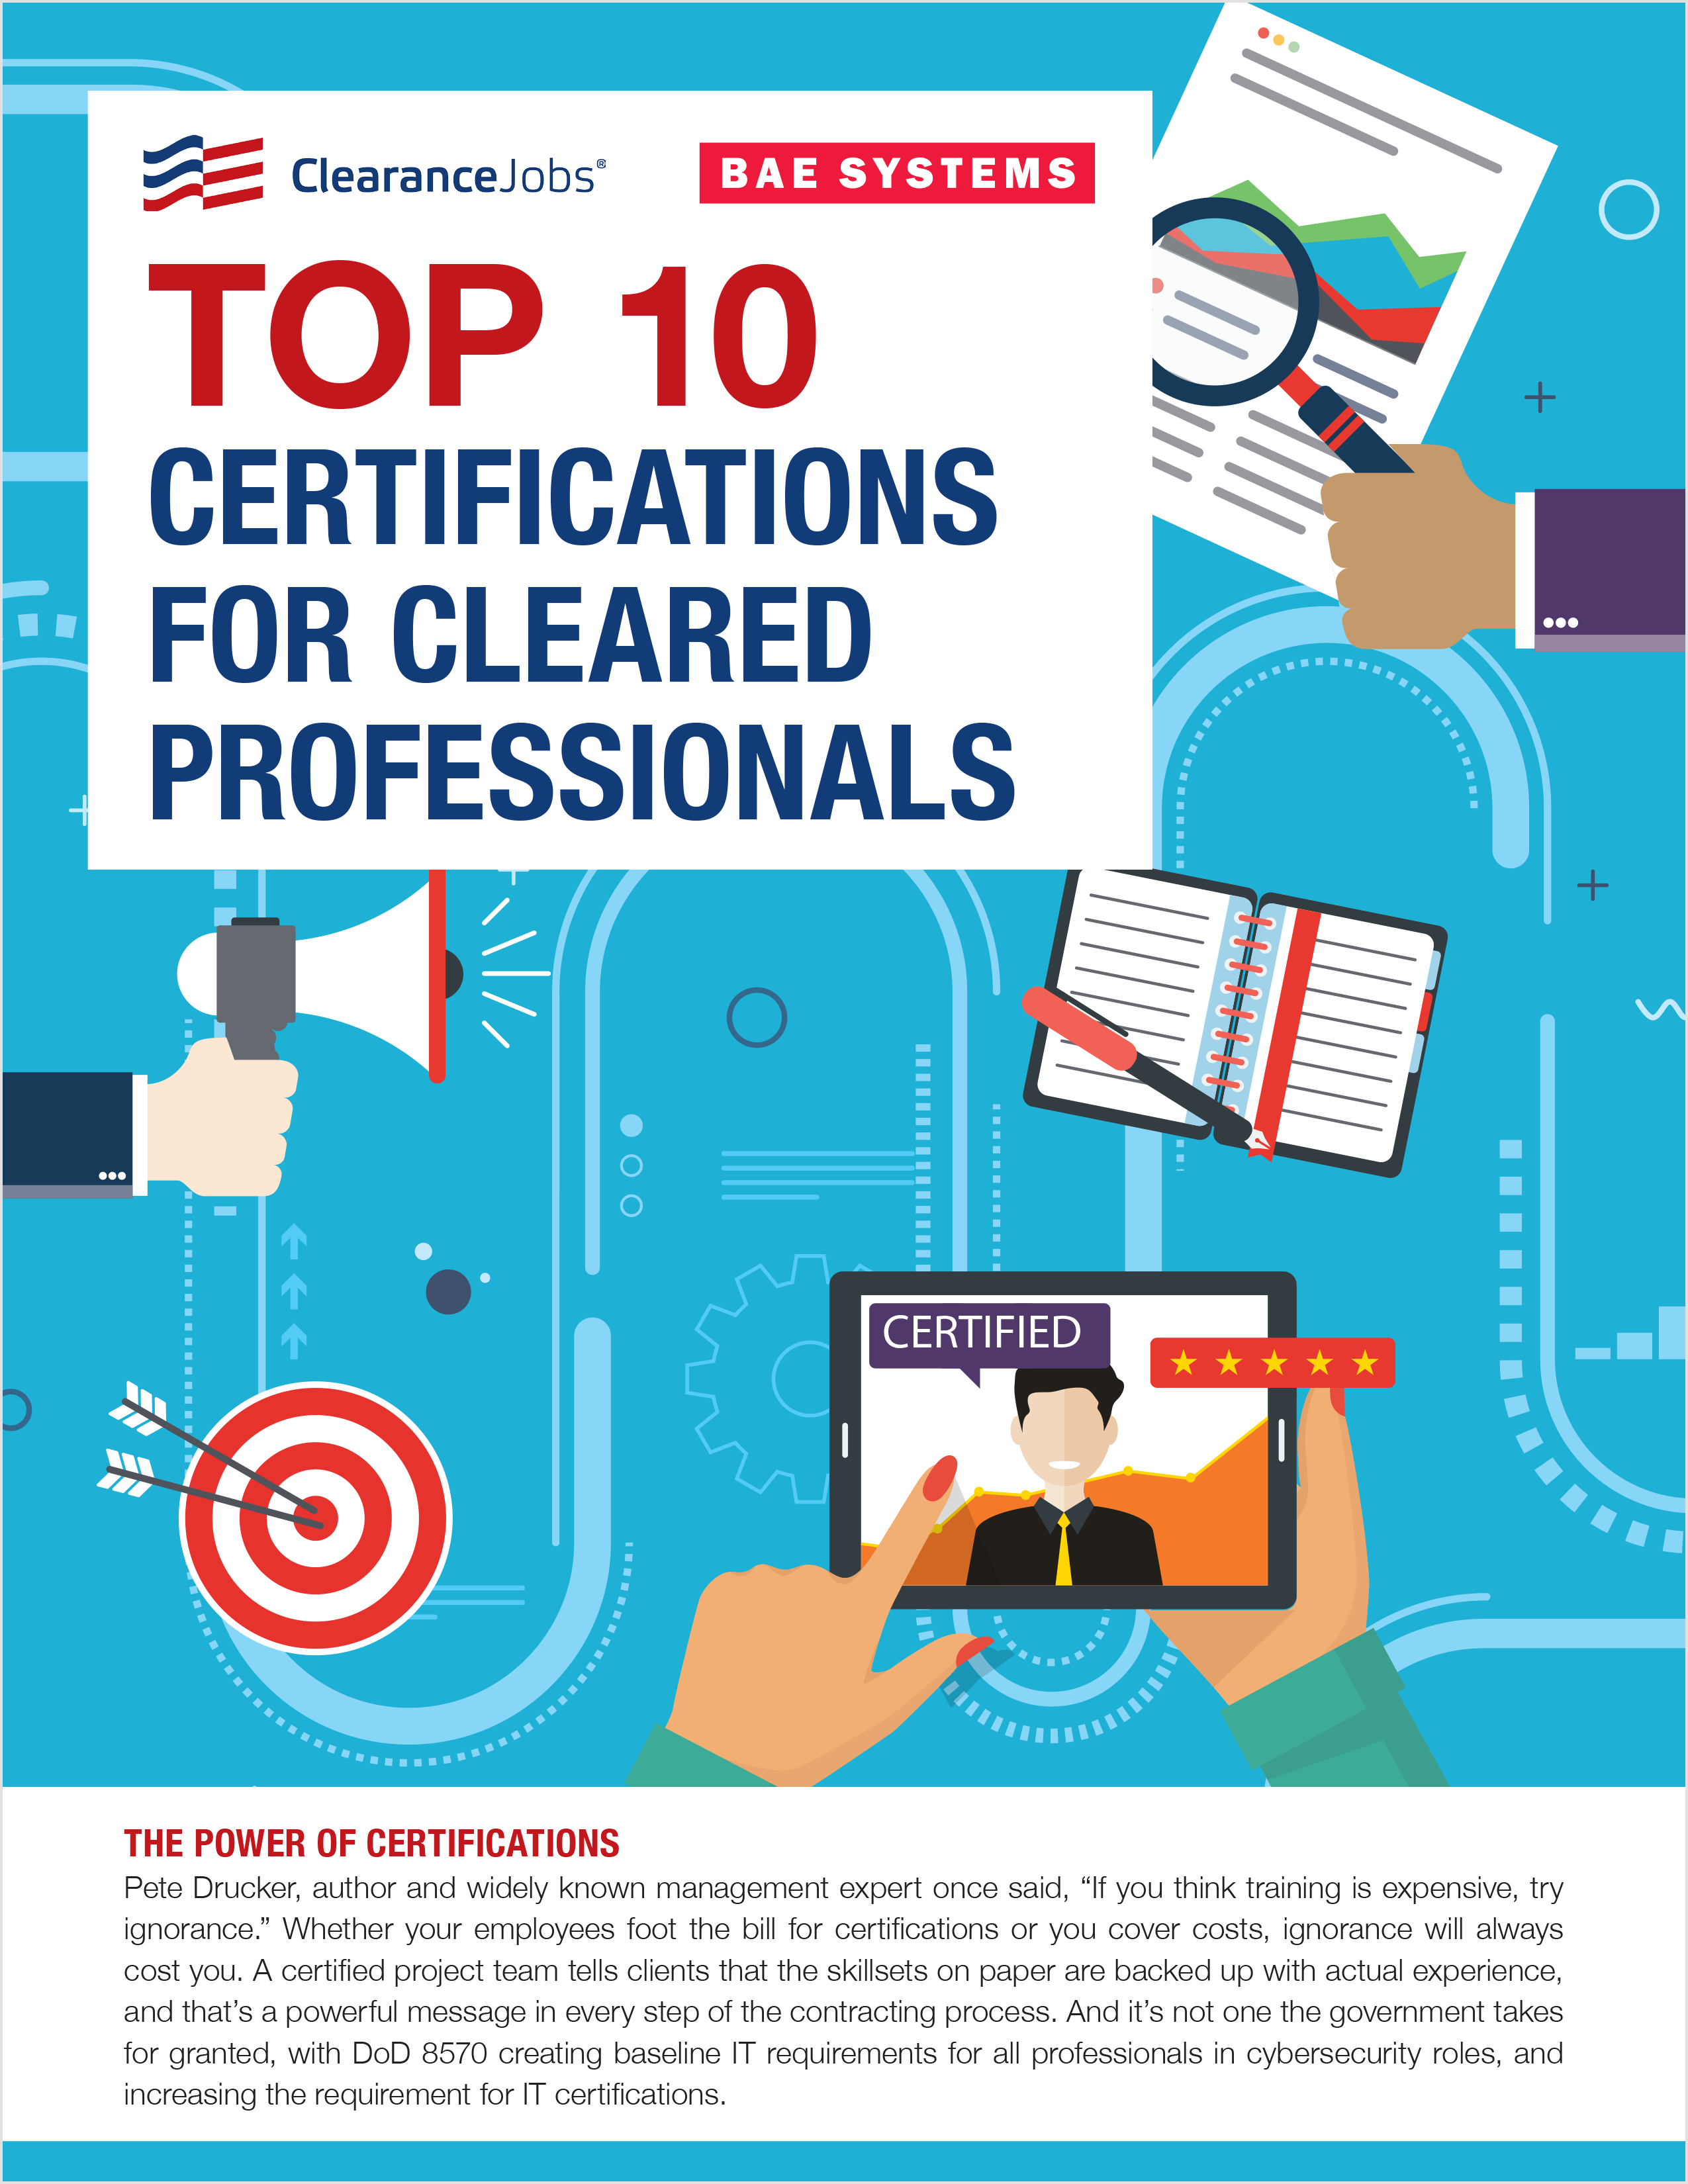 Top10CertificationsforClearedProfessionals_FINAL-2